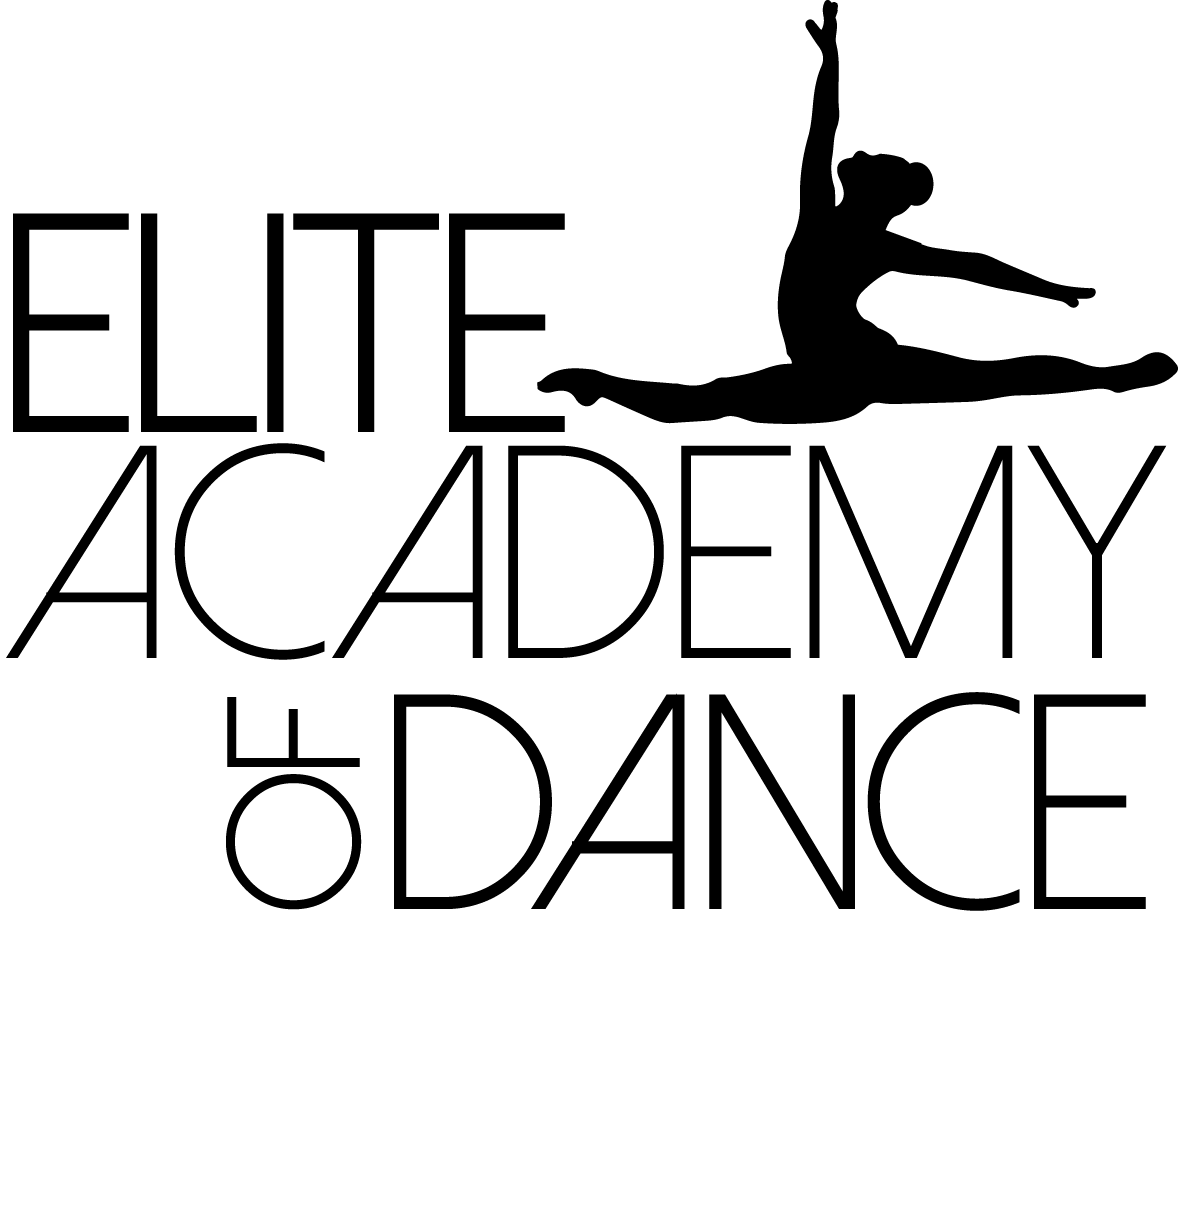 ELITE ACADEMY OF DANCE . SOUTHERN PINES NORTH CAROLINA